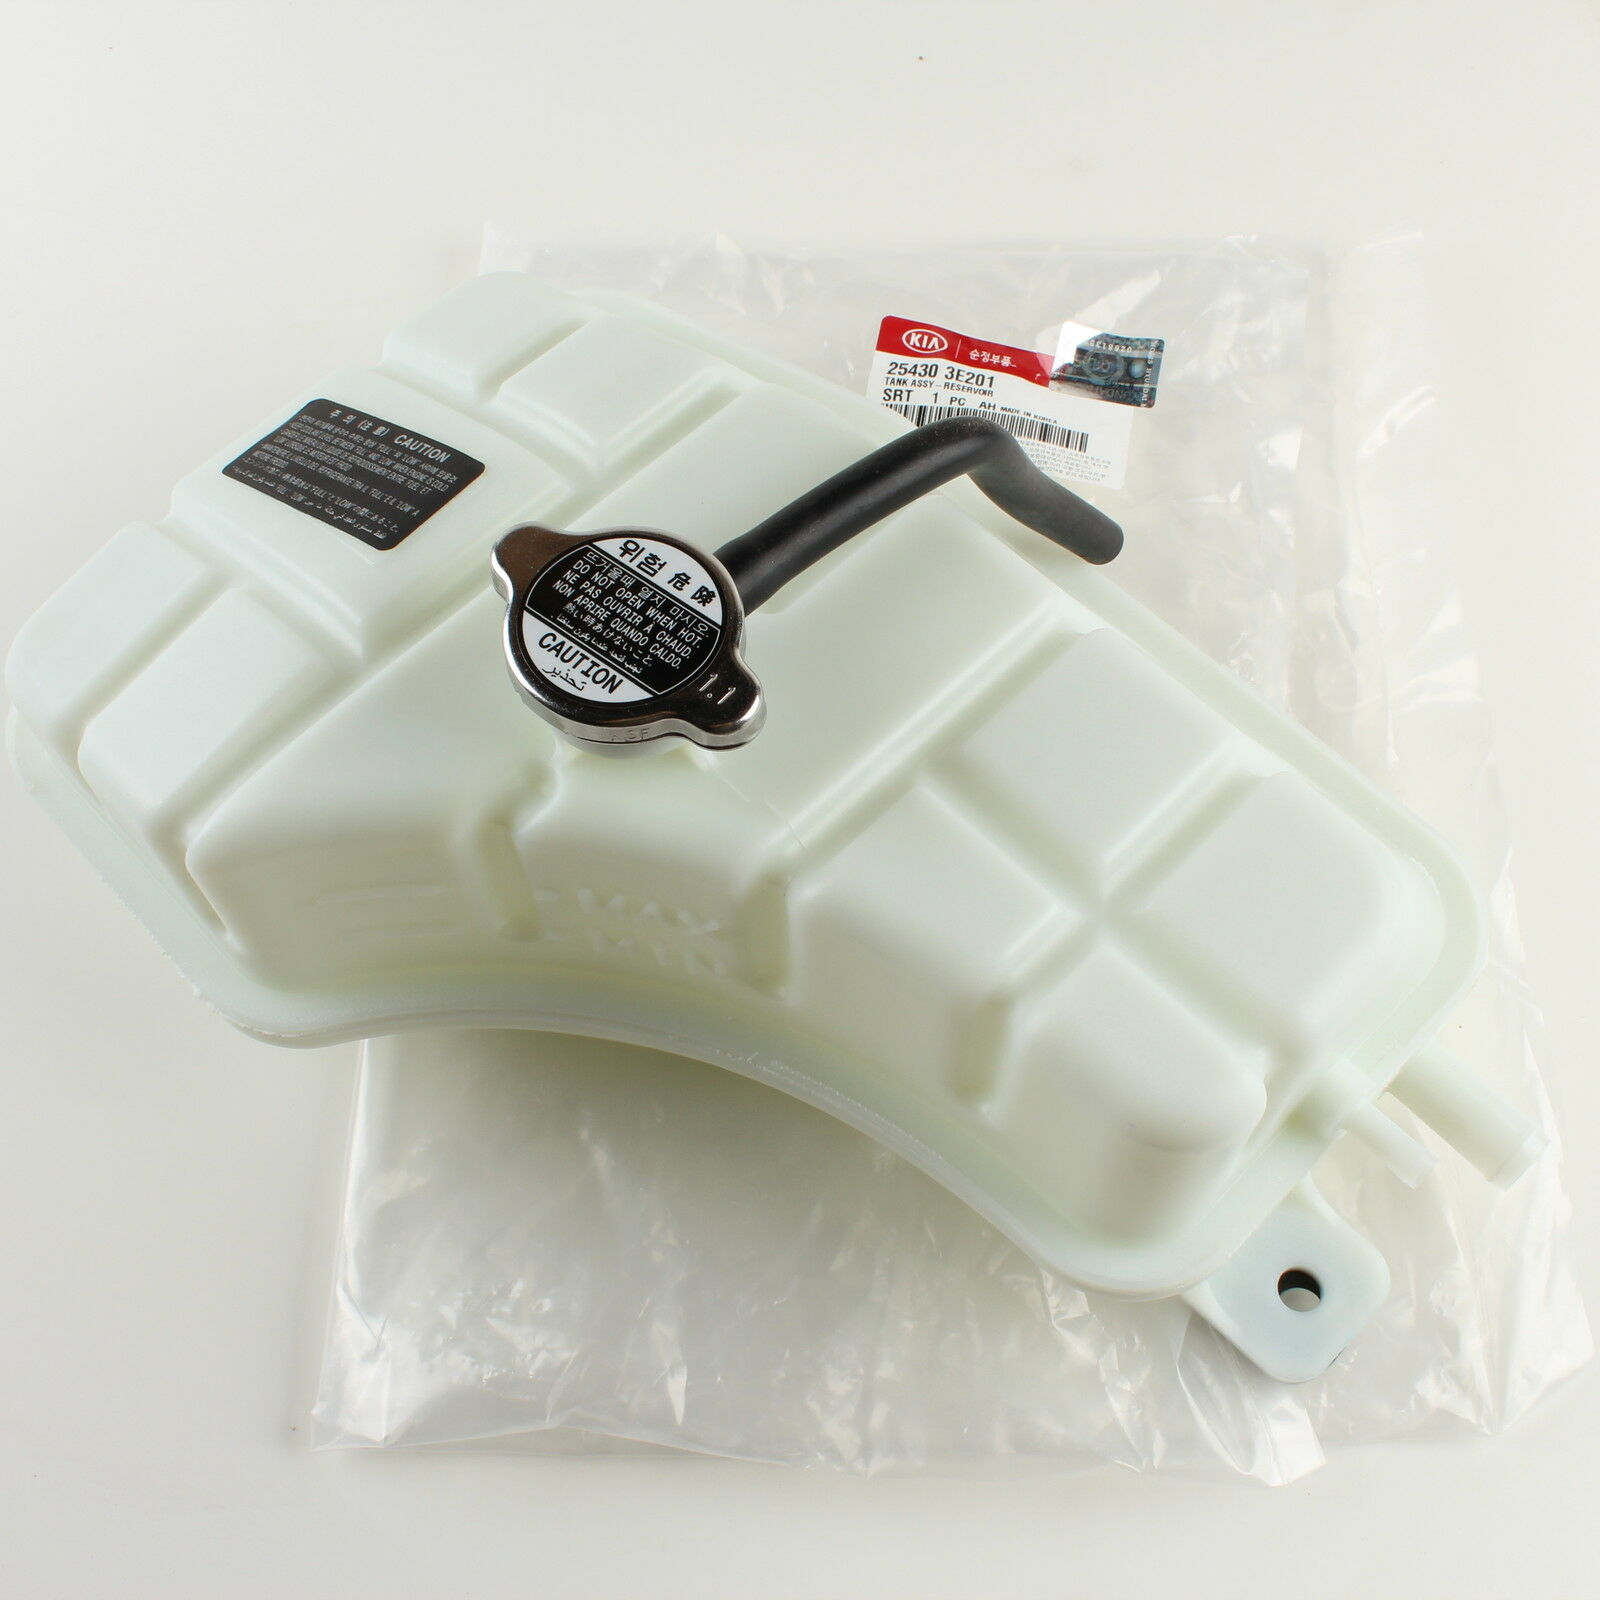 Kia First Time Buyer >> Genuine Kia Engine Coolant Reservoir with Cap for 03-06 Sorento 25430-3E201 | eBay